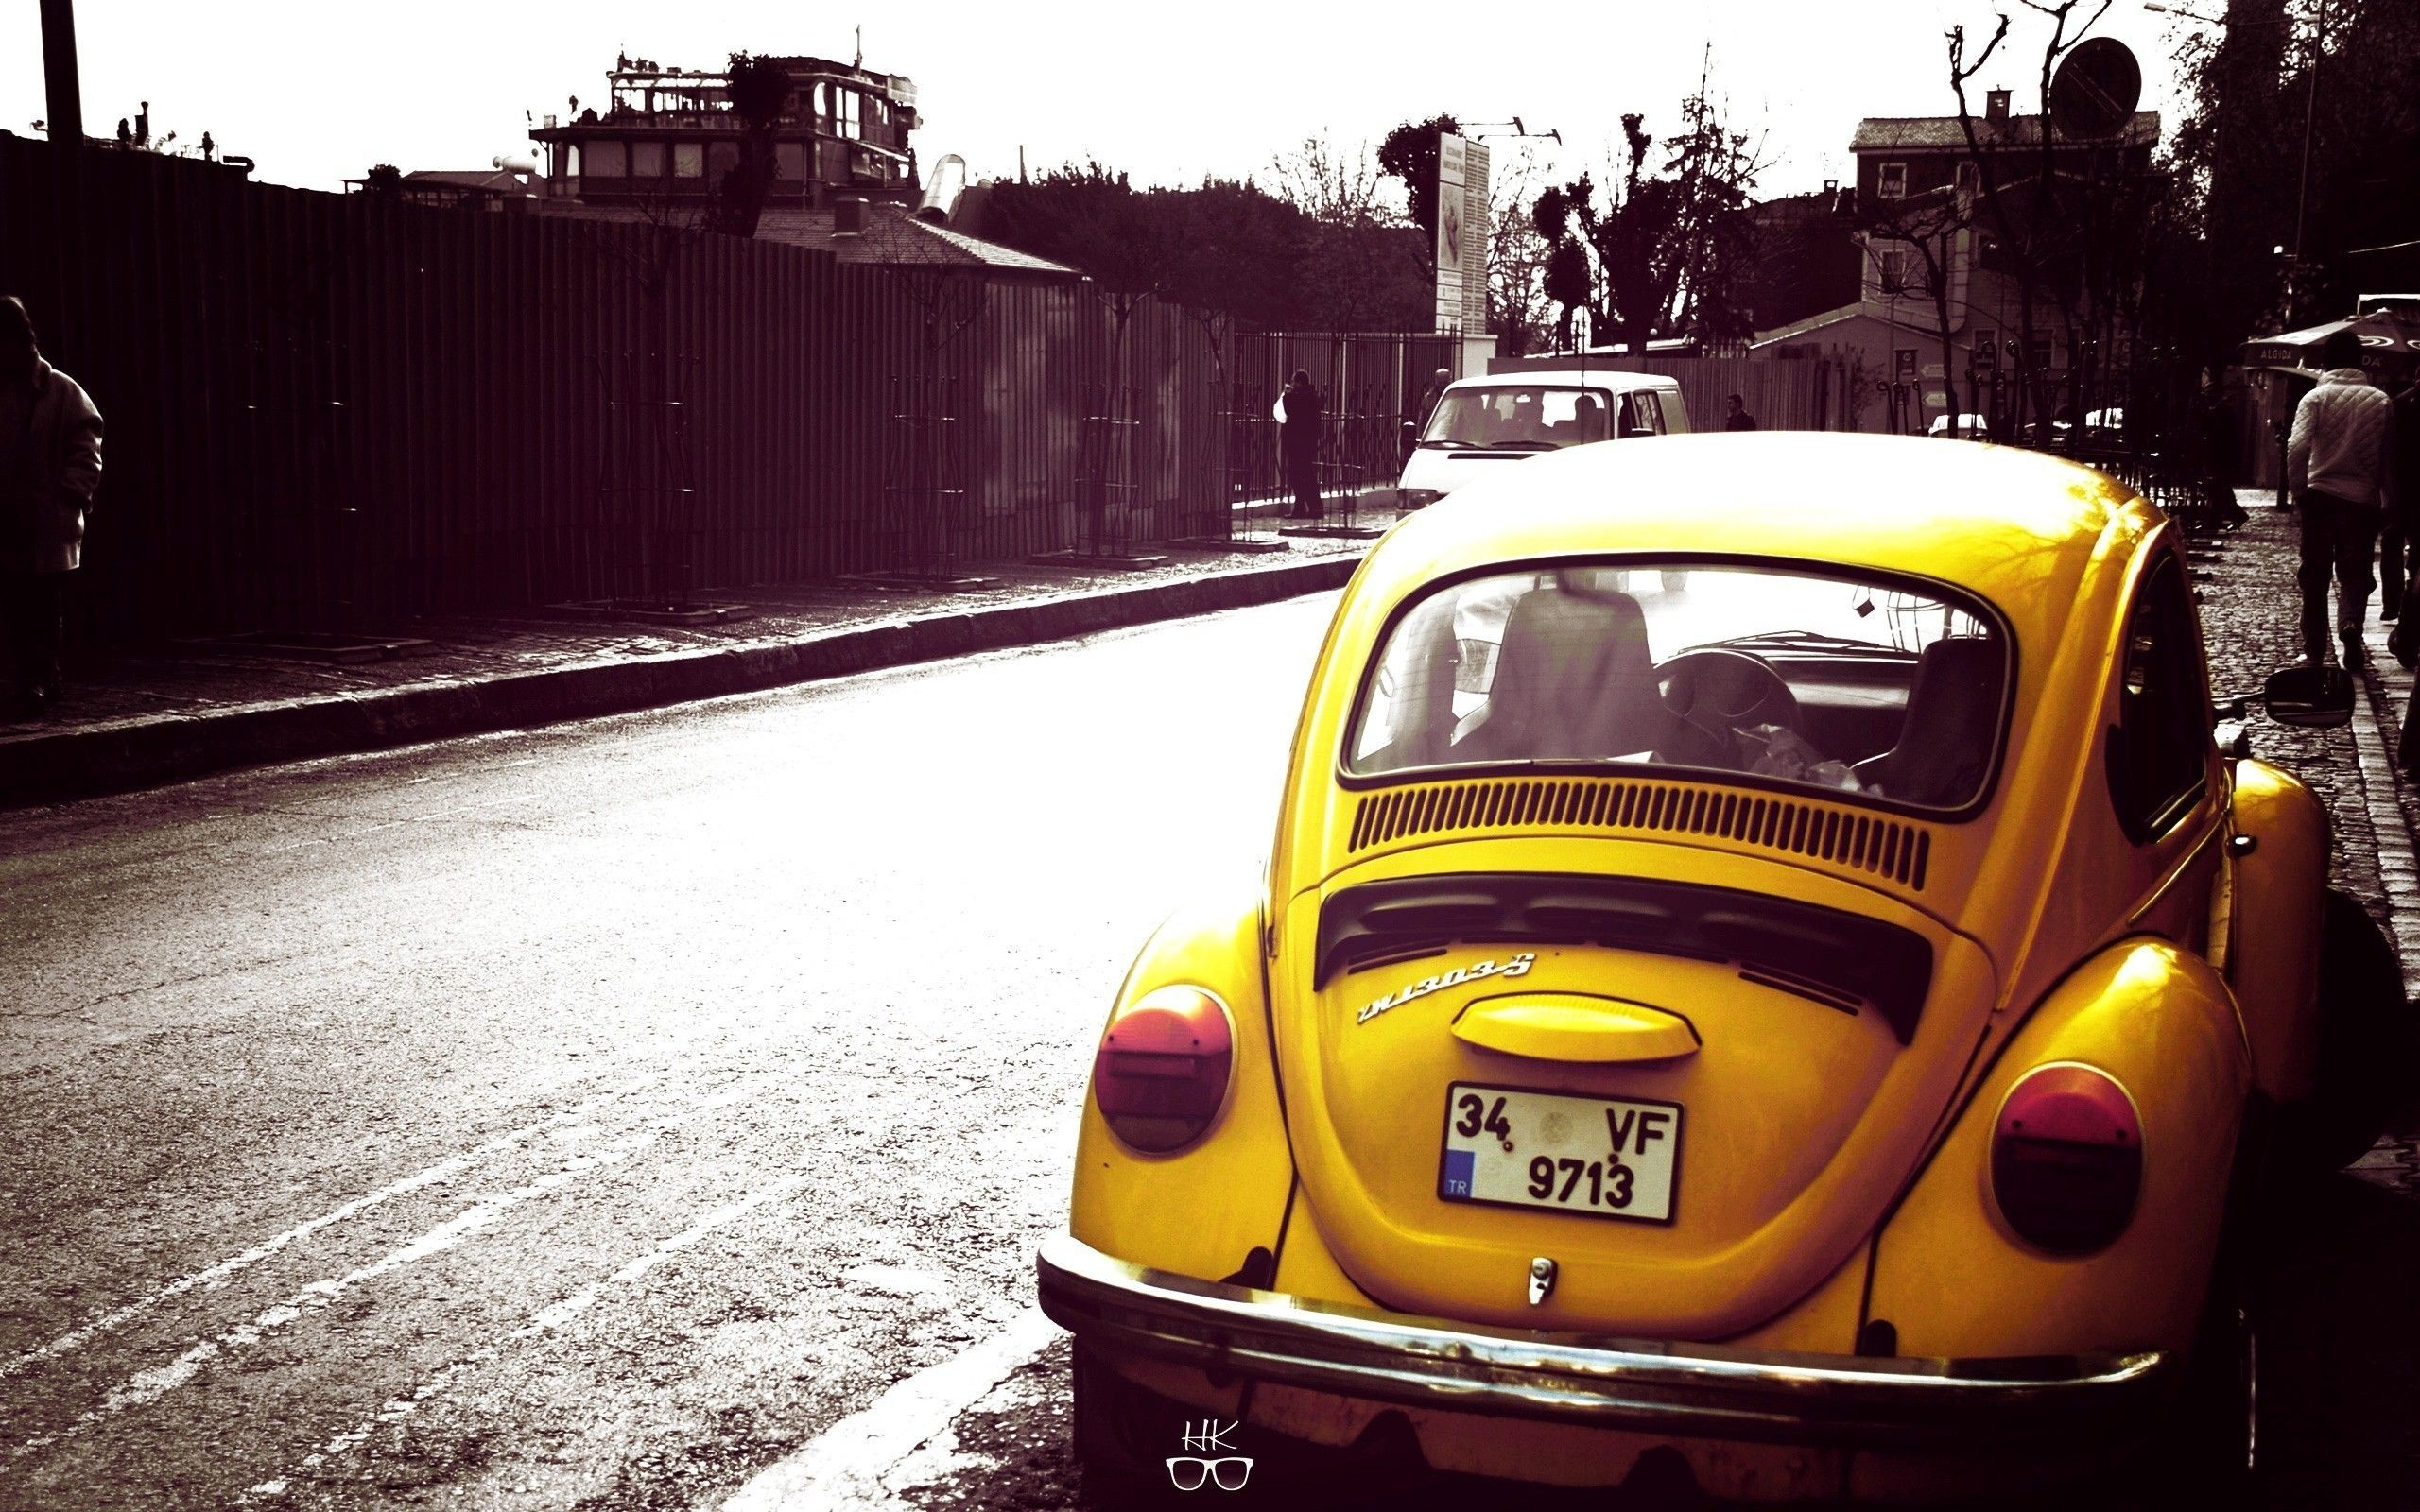 Mac Wallpapers Volkswagen Apple Wallpaper Beetle Vintage For Sale  Background…